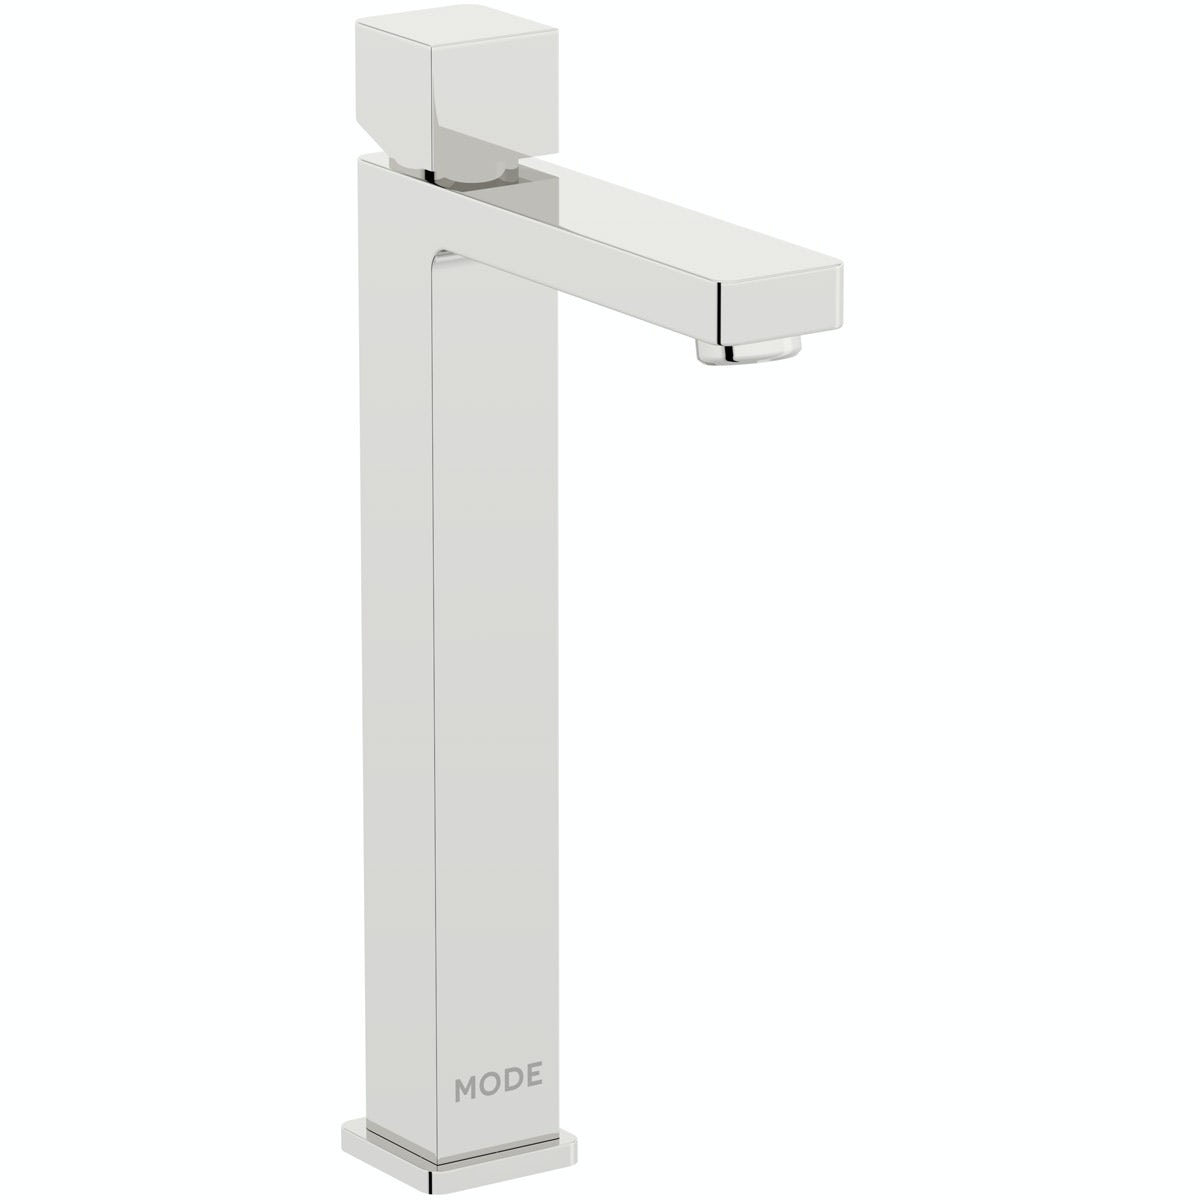 Mode Dixon high rise basin mixer tap